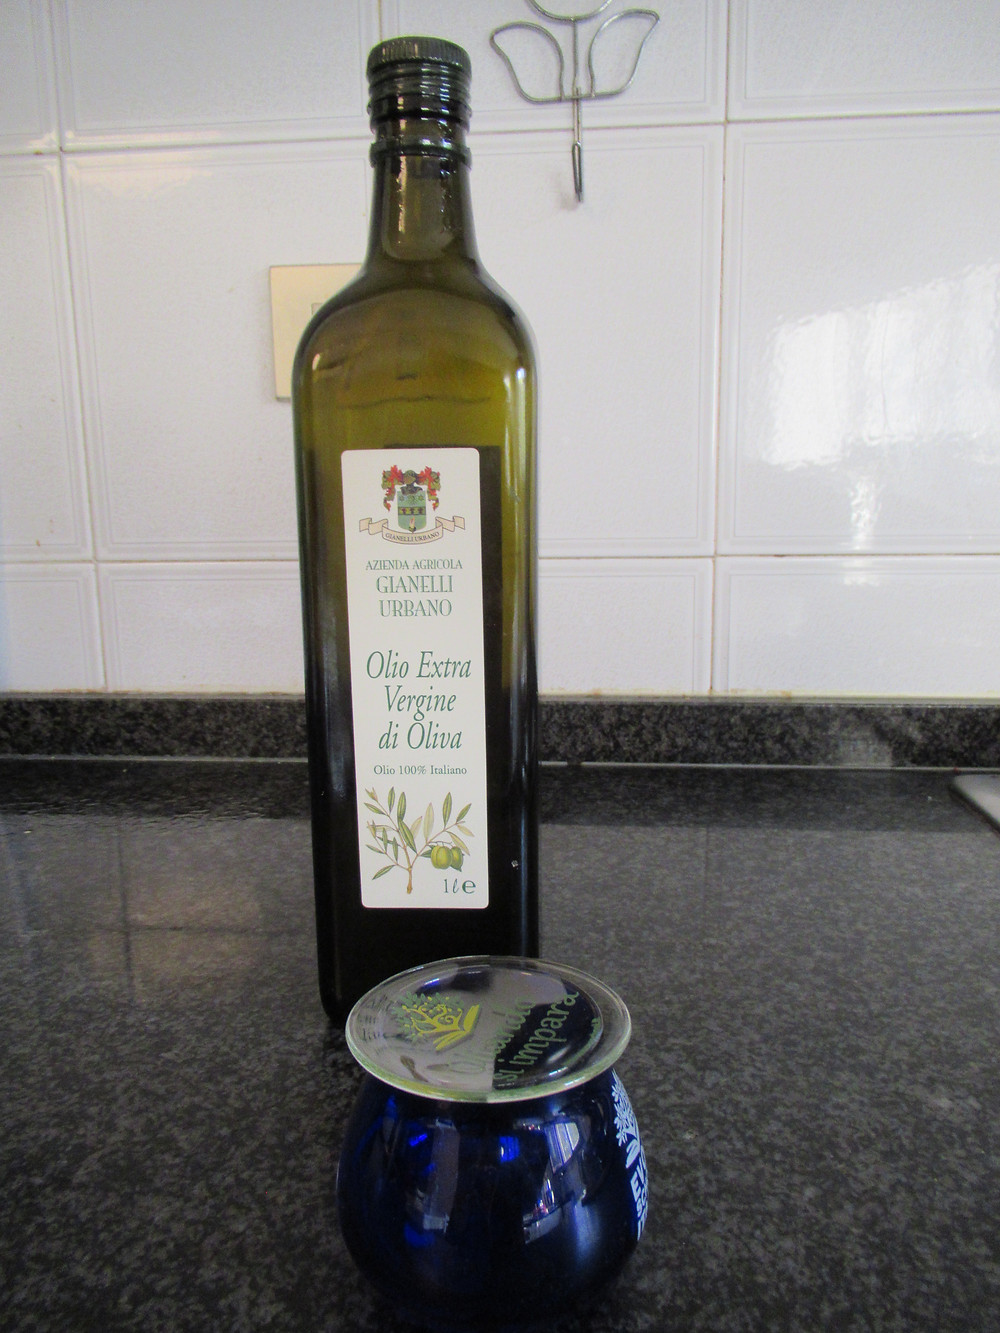 My bottle of EVOO and glass for tasting